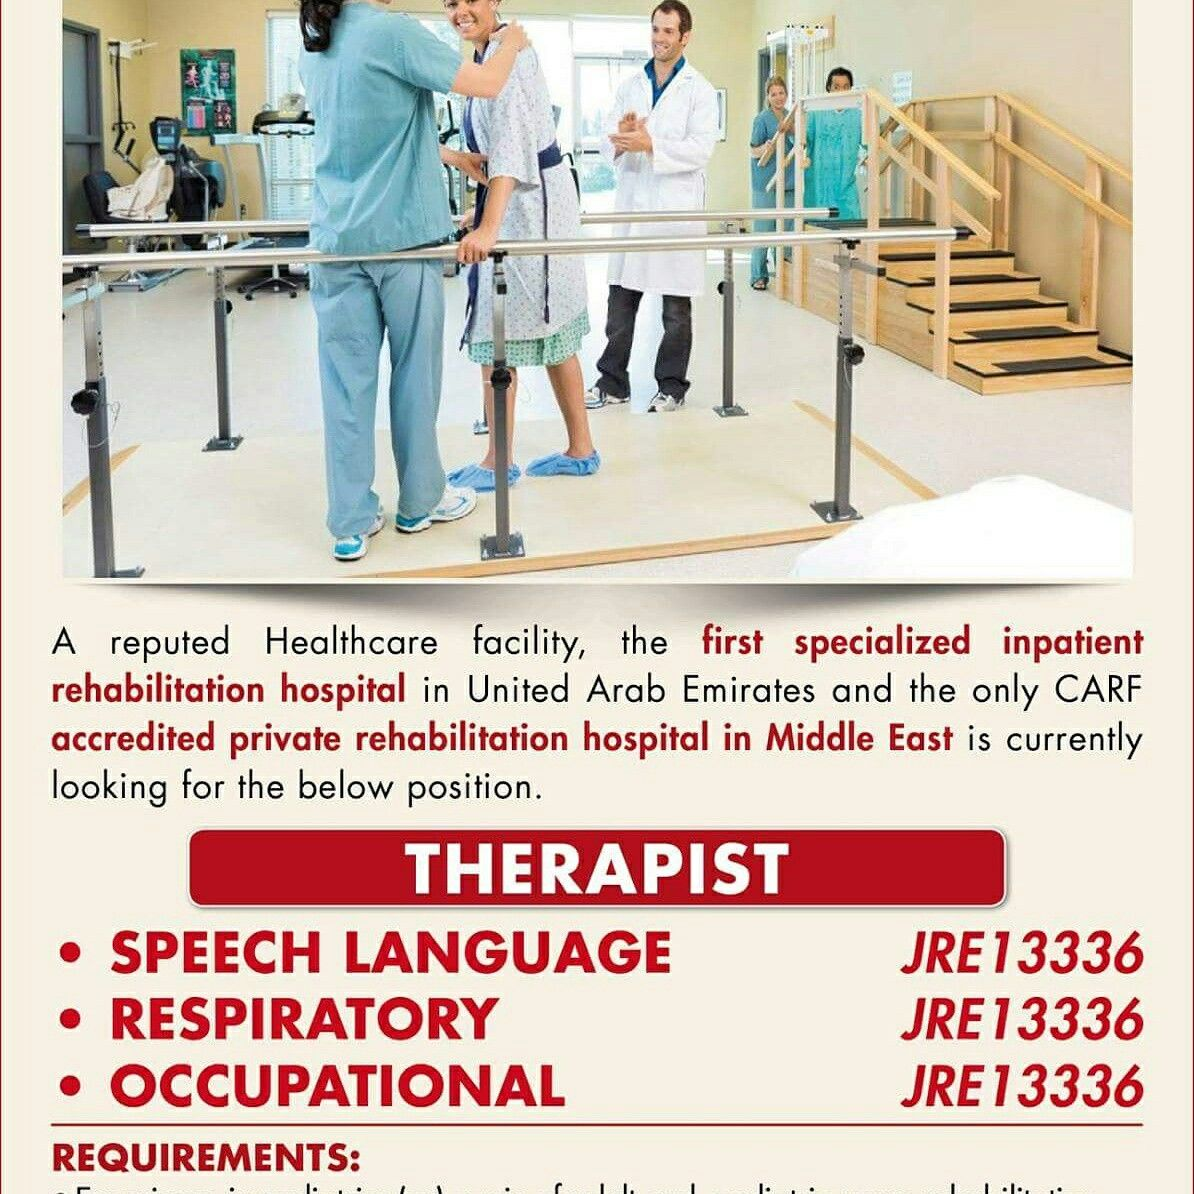 Job Opportunities for UAE - Please log on to www